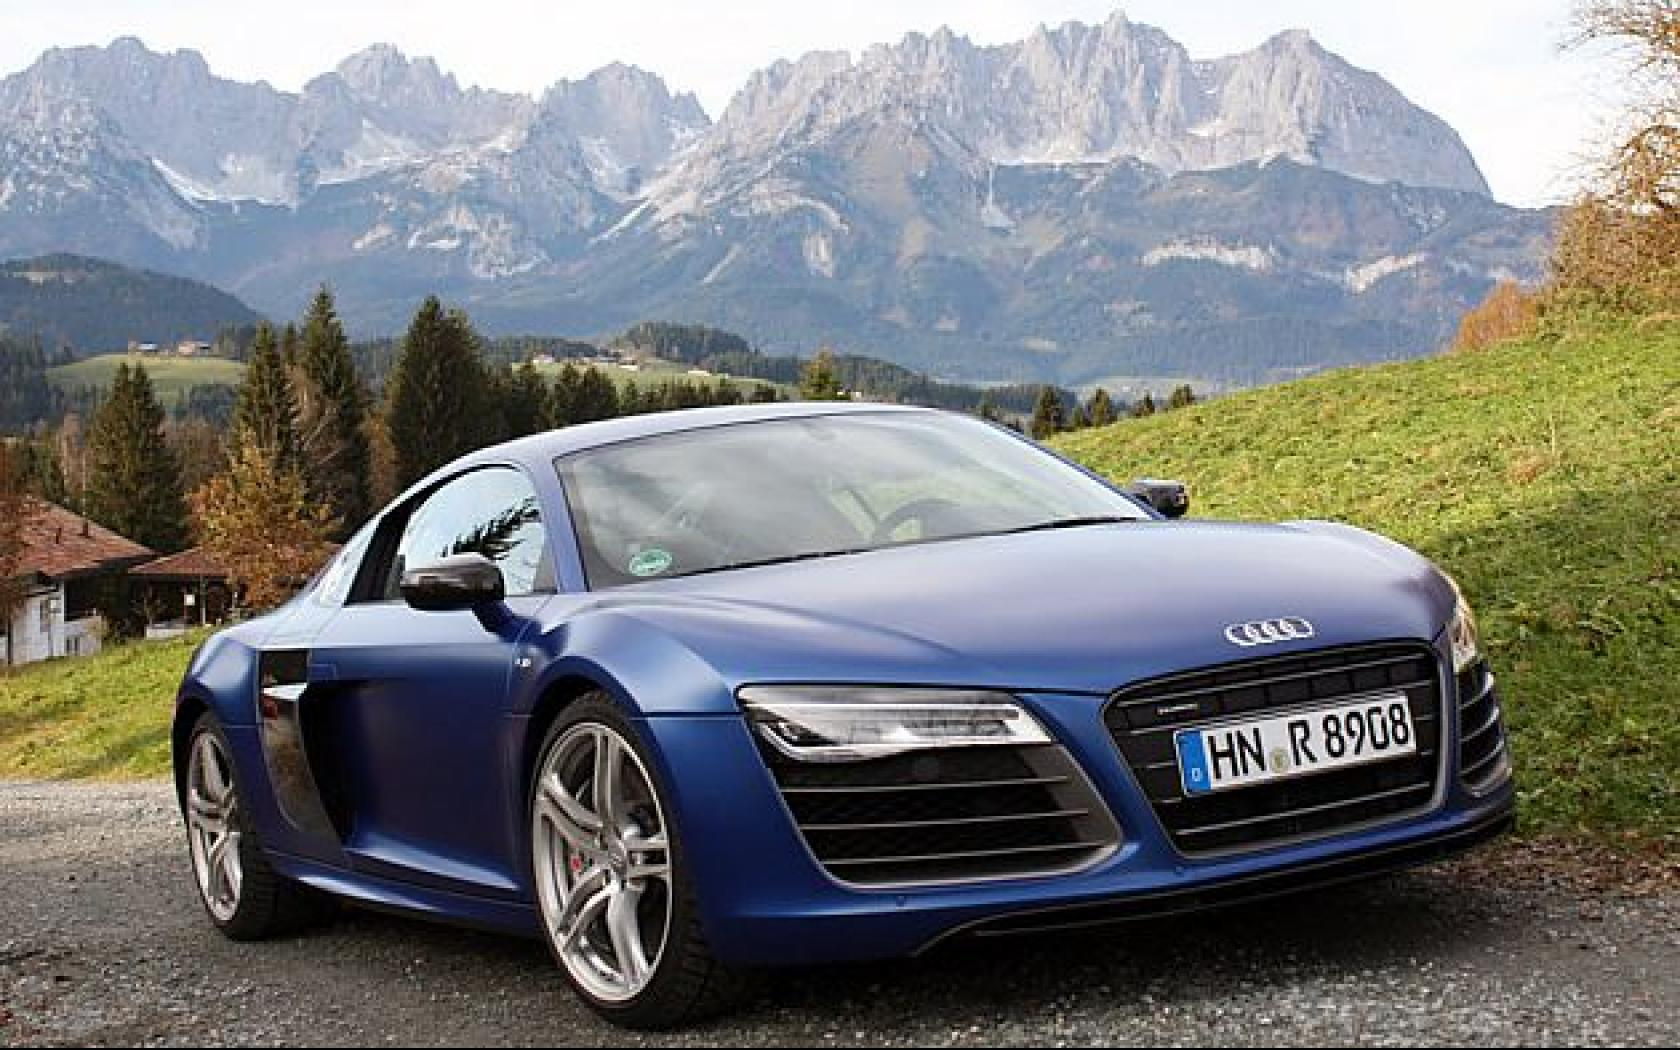 Audi R8 V10 Wallpaper   Amazing Car WallpaperAmazing Car Wallpaper 1680x1050